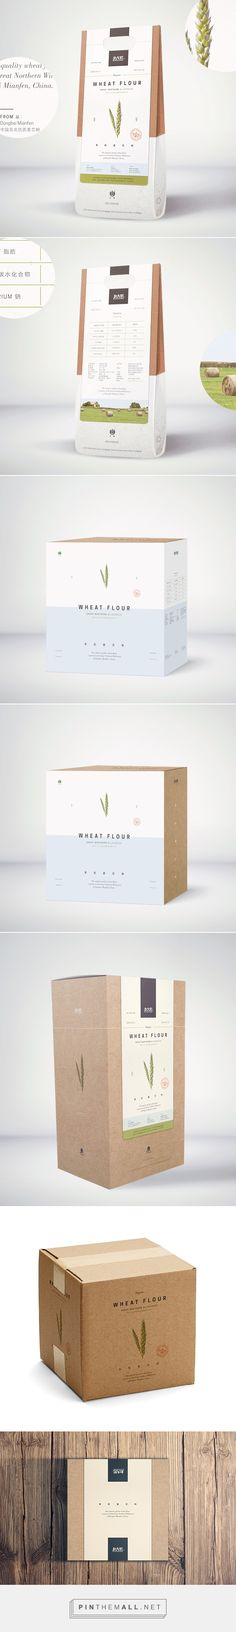 Great Northern Wilderness - Organic Flour Packaging